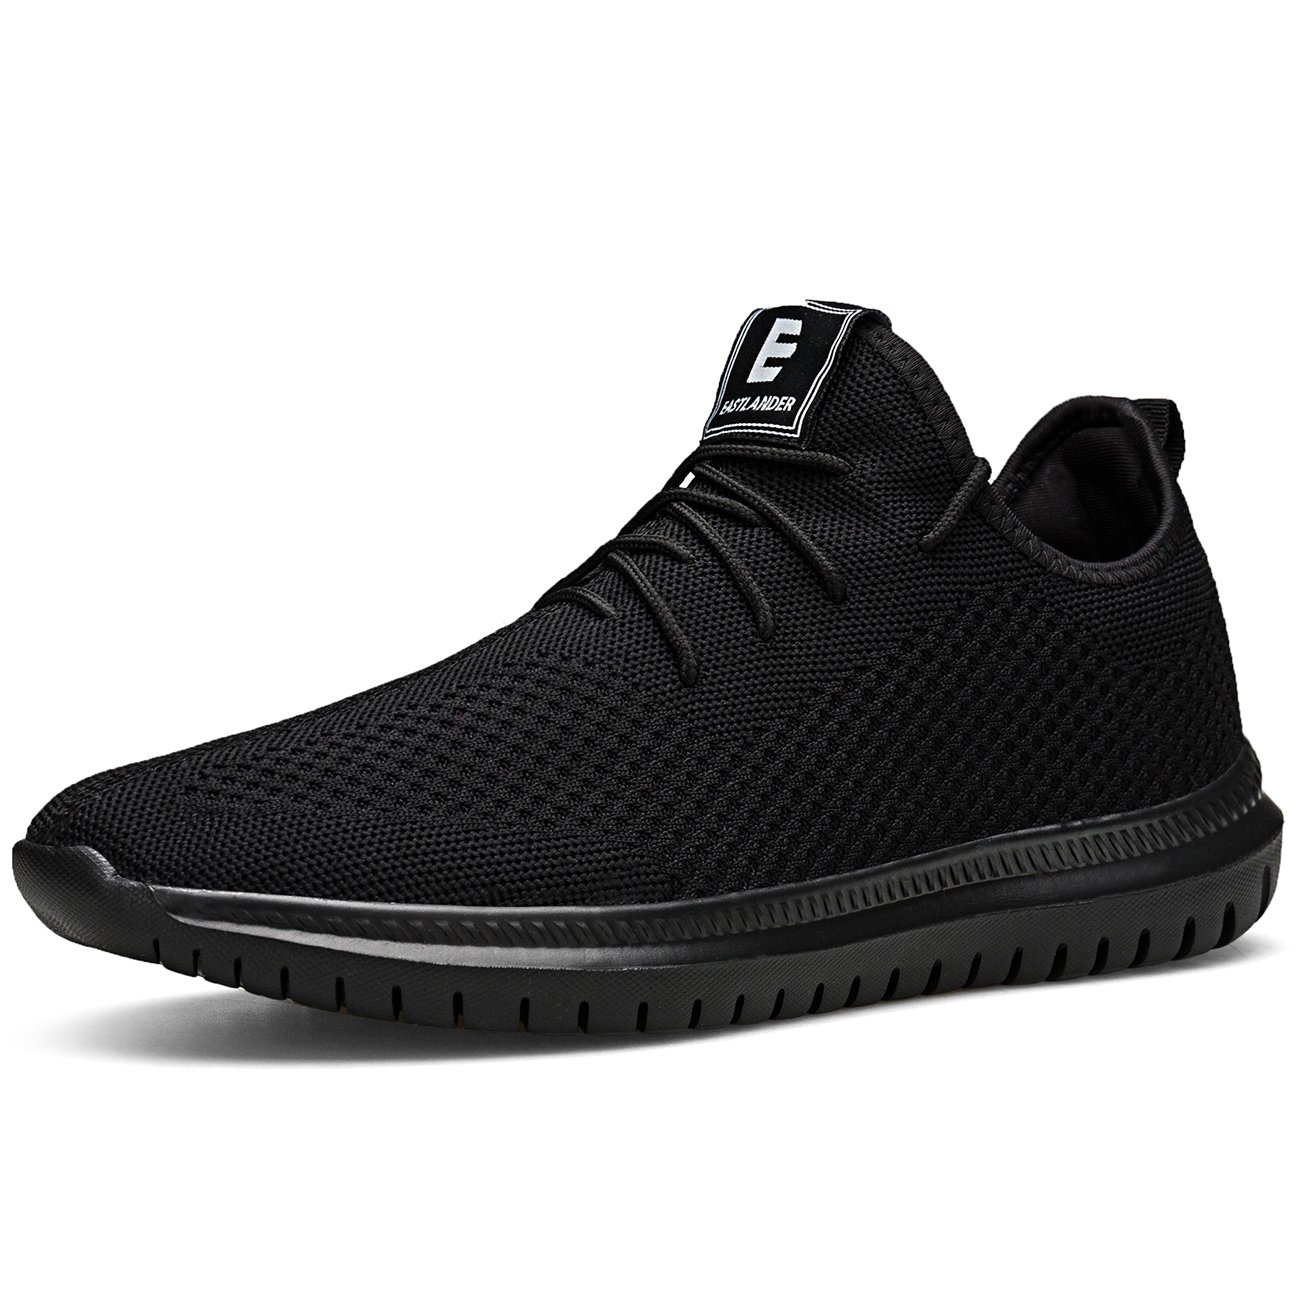 EAST LANDER Sneakers for Men and Women Lightweight Athletic Walking Shoes Casual Sneakers Lace-up Running Sports Shoes SPT002-U1-39